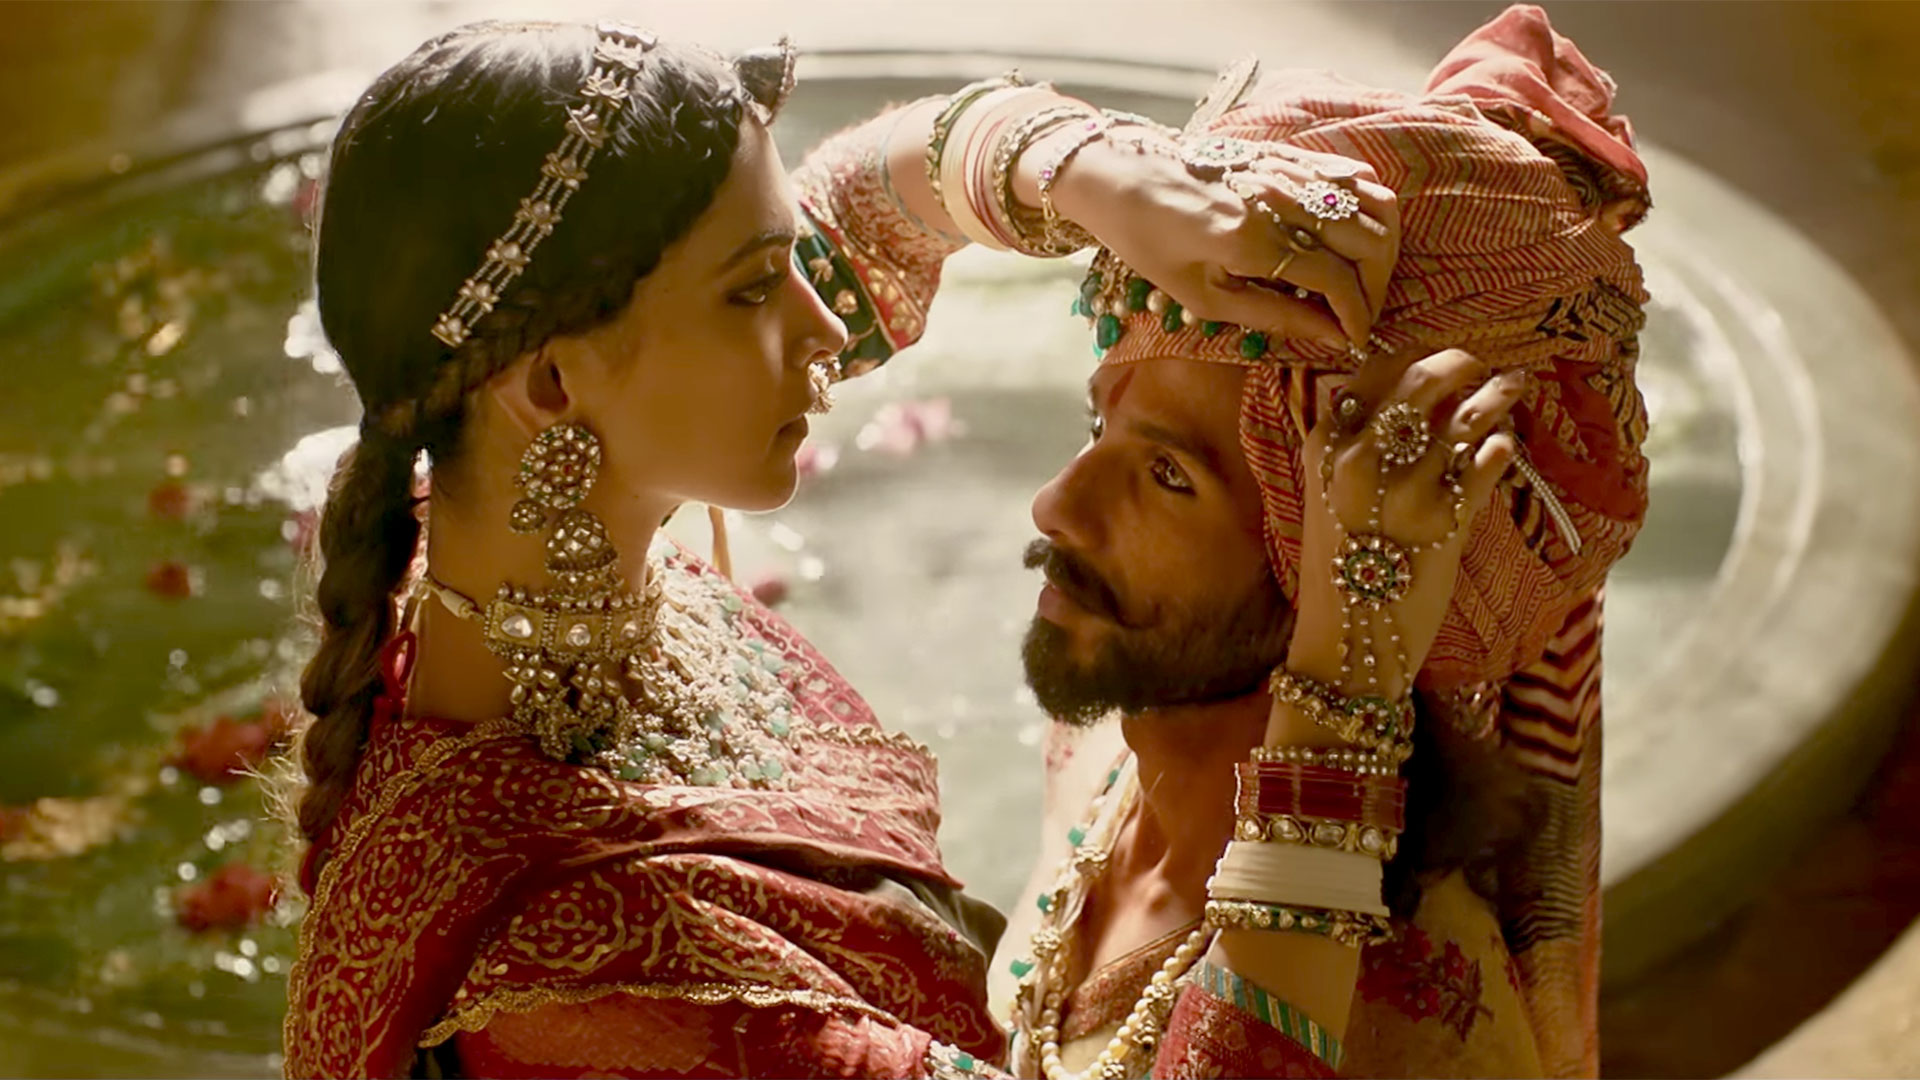 Another Padmavat Star, Shahid Kapoor, to Get a Wax Statue in Madame Tussauds